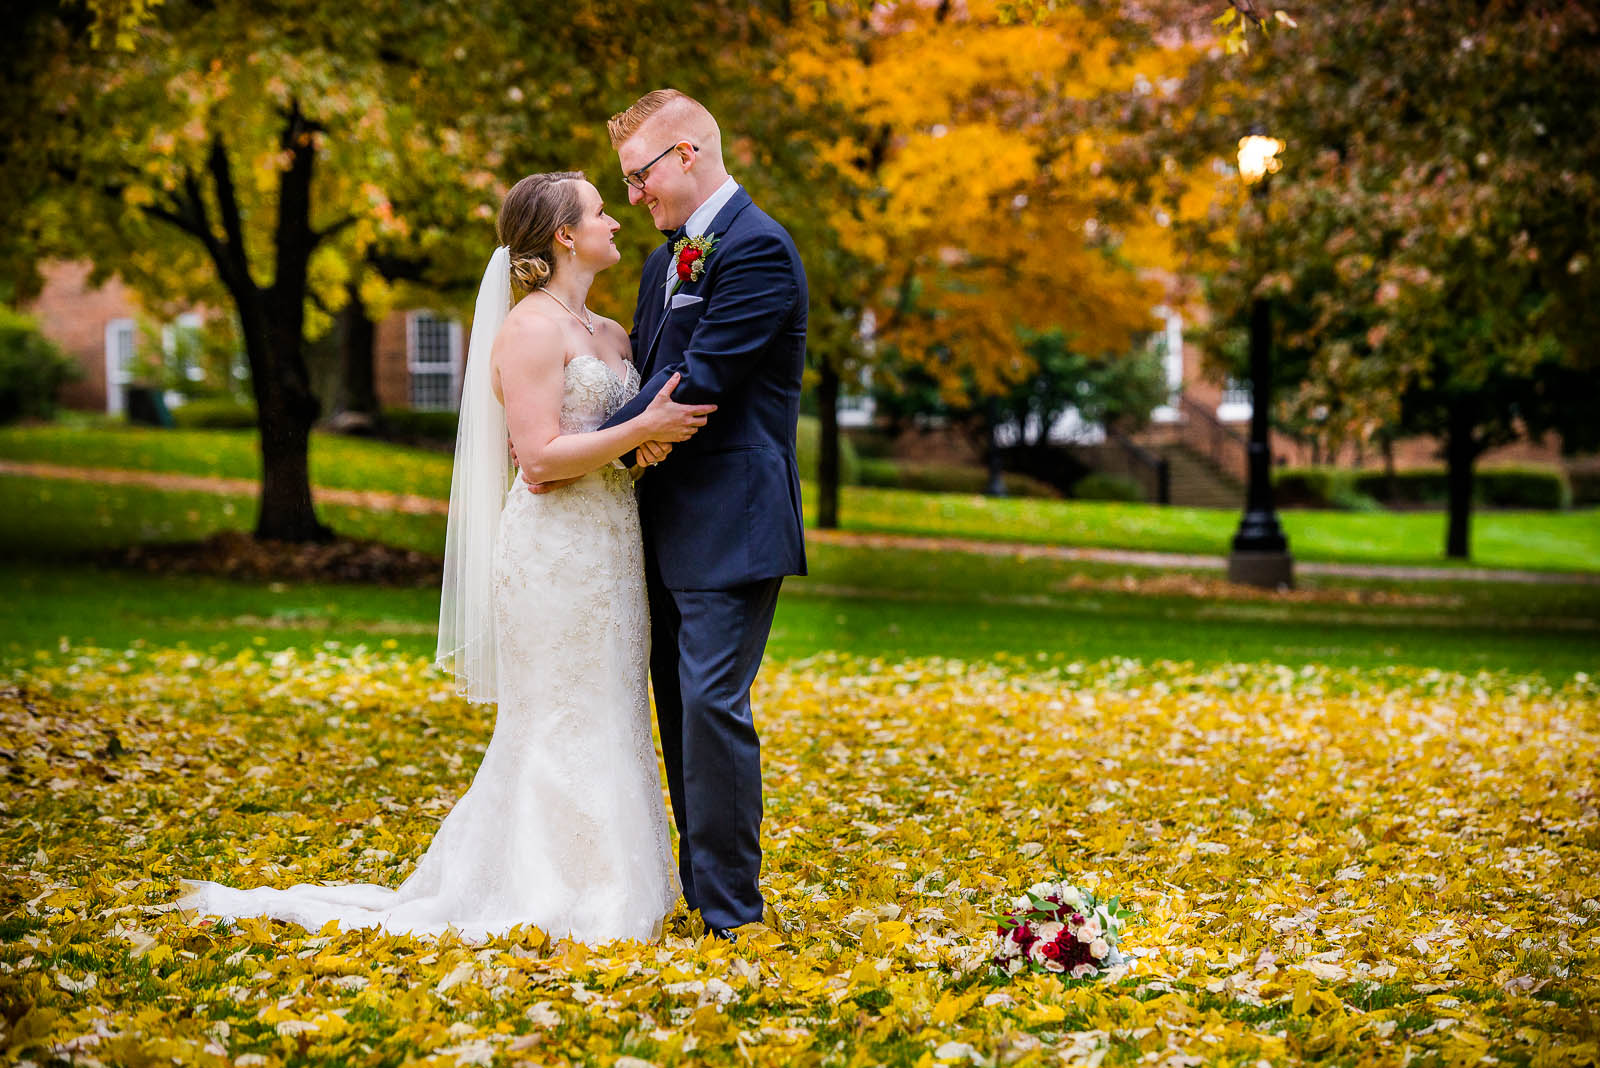 Eric_and_Christy_Photography_Blog_Wedding_Erica_Mike-53